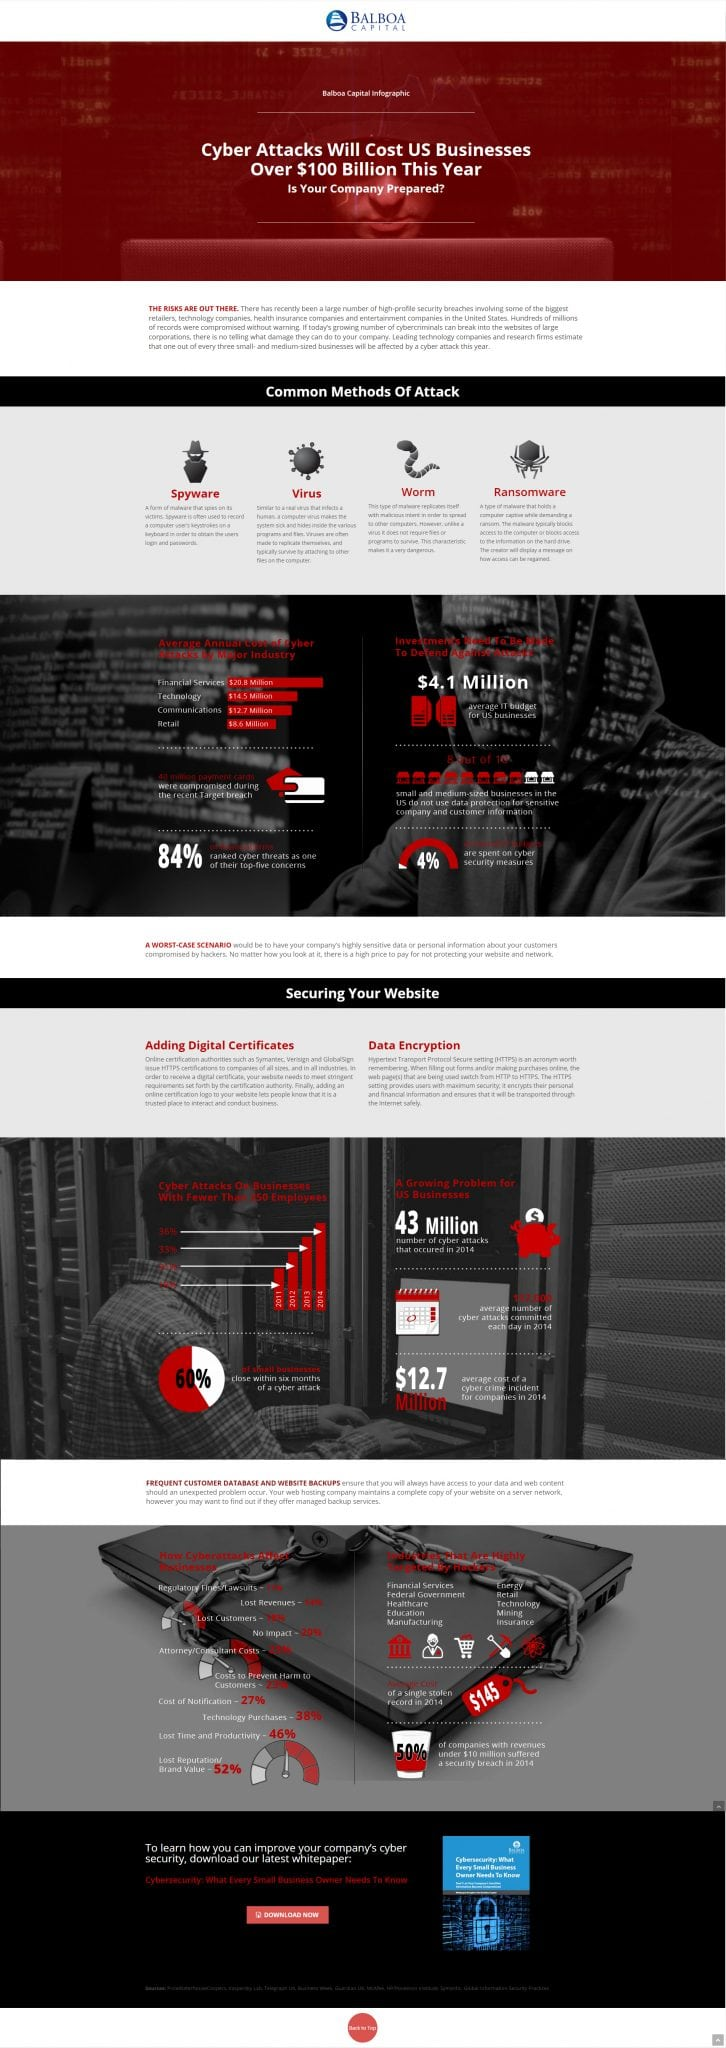 Photo of Cyber Attacks: Is Your Company Prepared?